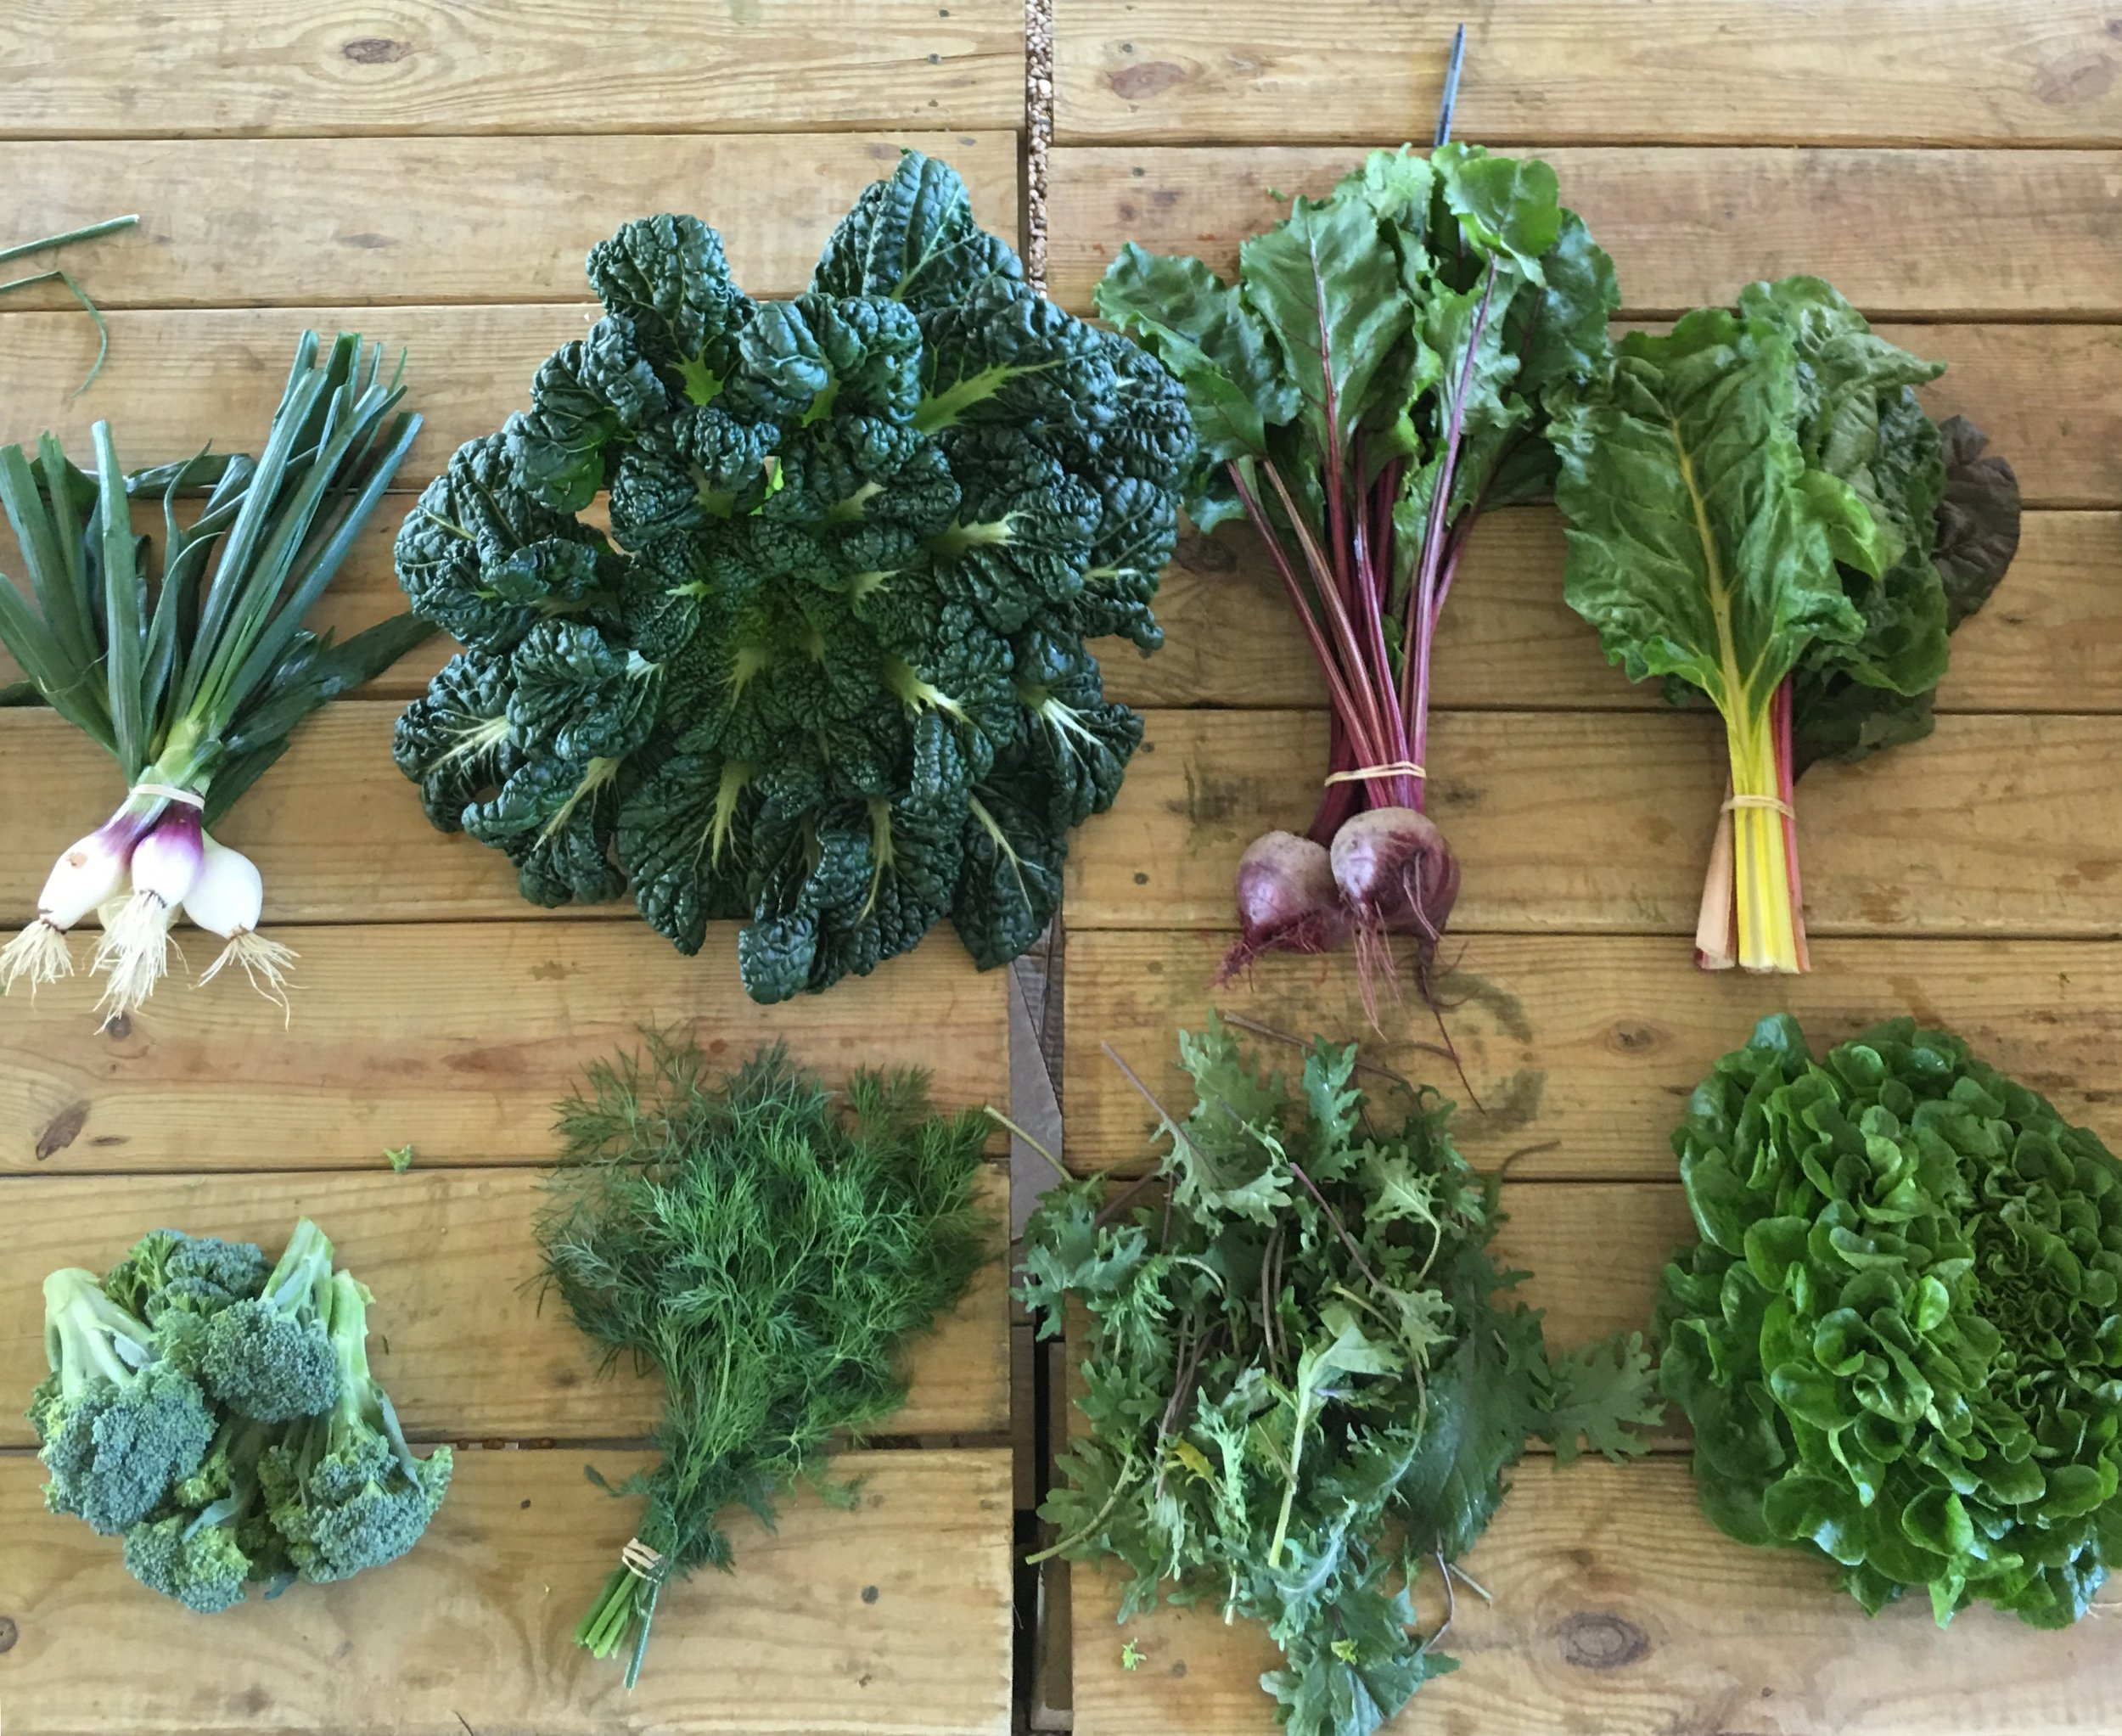 Top row left to right- spring onions, yukina savoy, red beets, and swiss chard  Bottom row left to right- broccolini, dill, baby kale, and lettuce